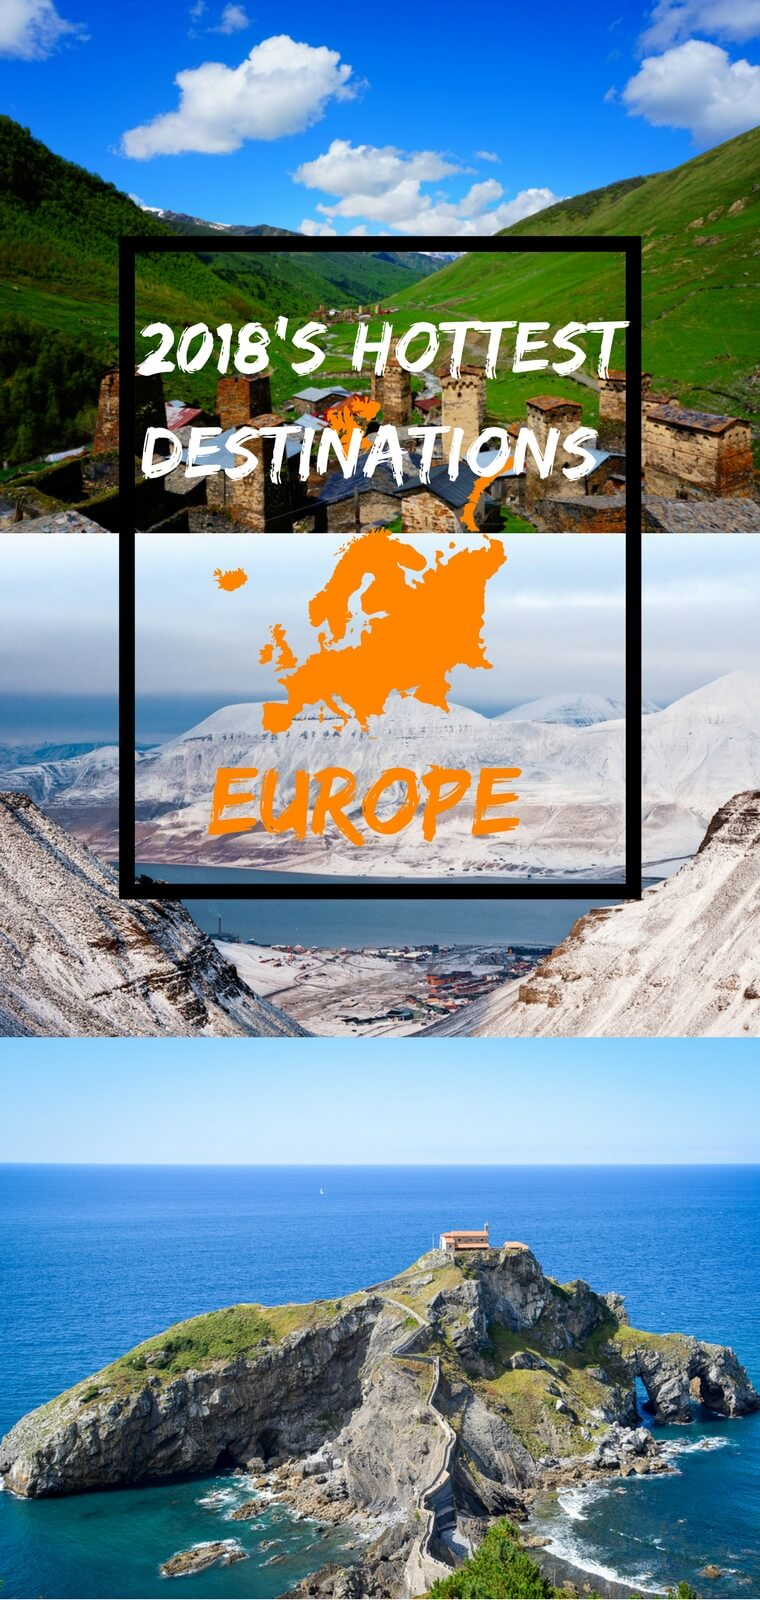 2018's Hottest Travel Destinations in Europe: From Spain to Norway, we've got you covered with the best off-the-beaten path and emerging travel destinations in Europe.